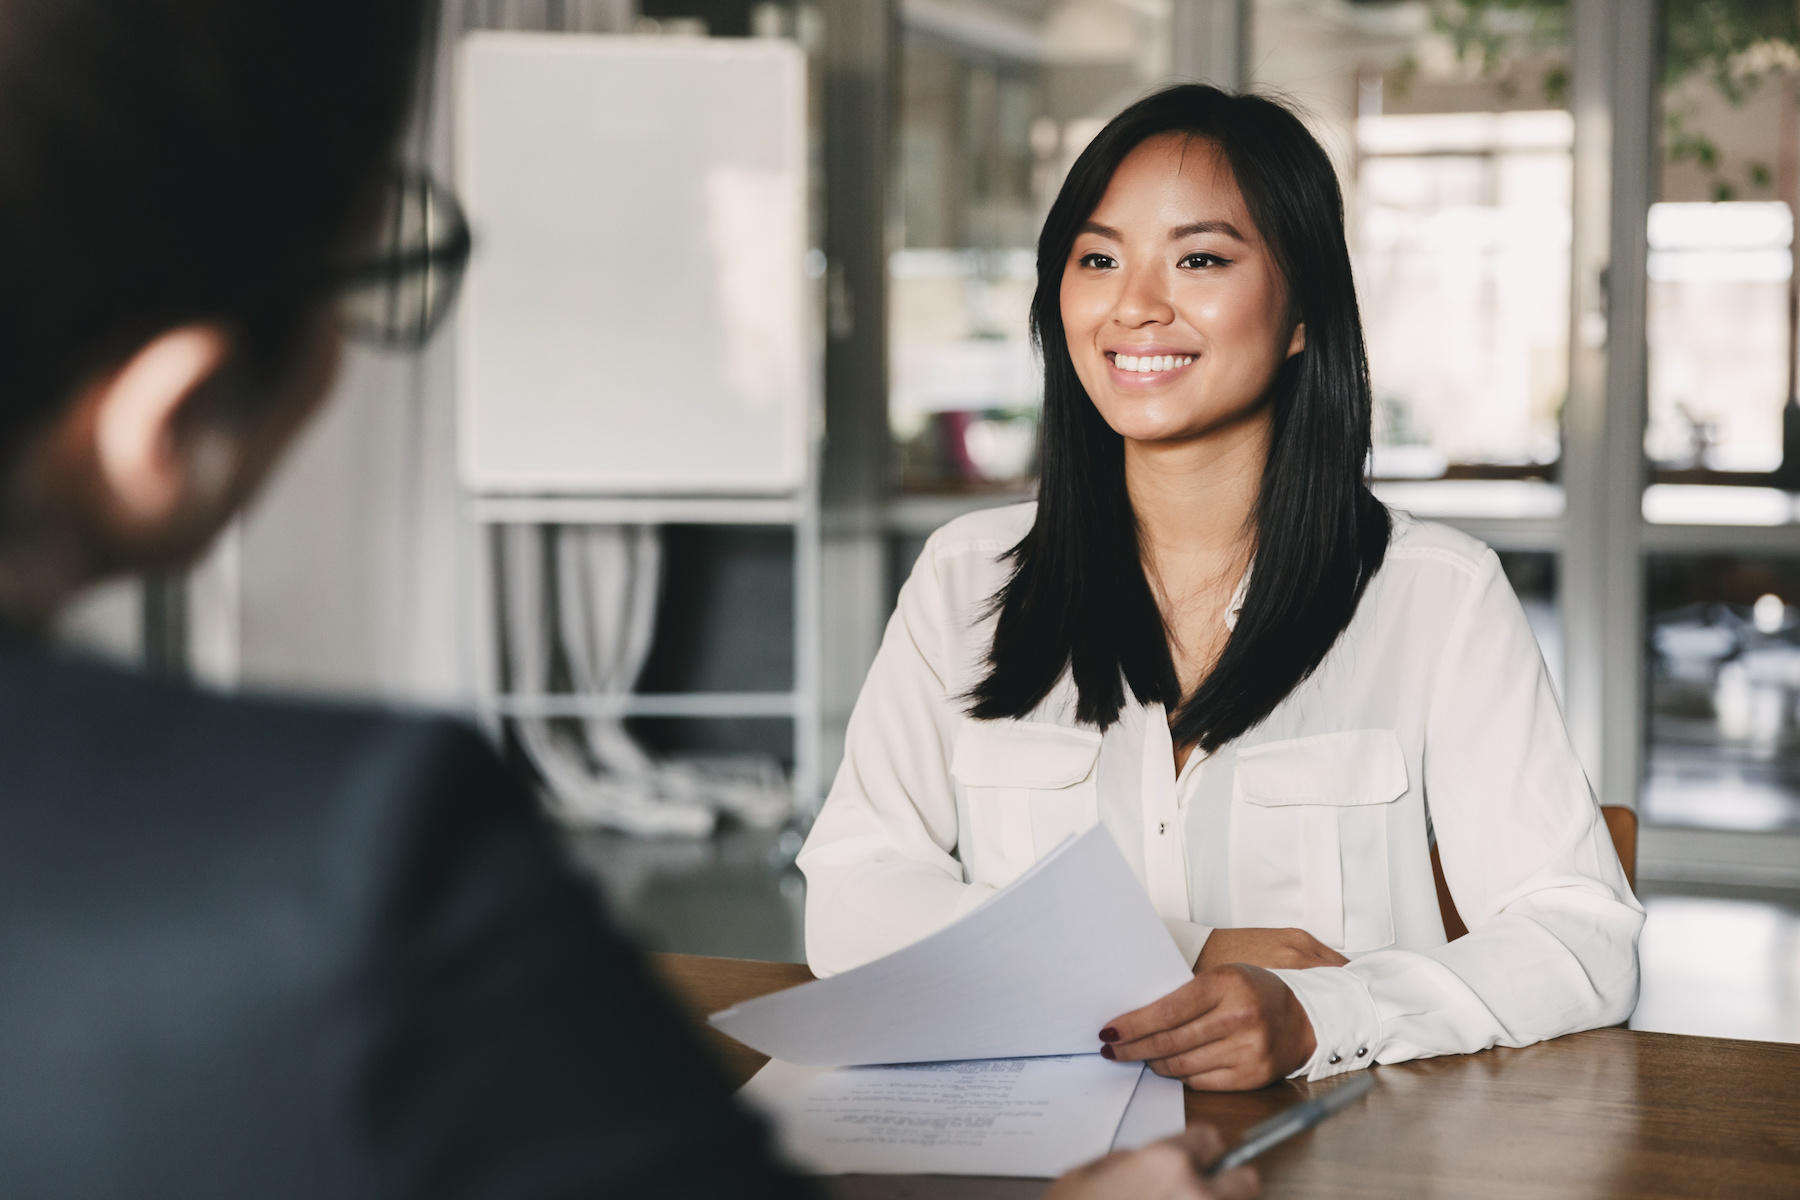 How to prepare yourself for an interview in Japan